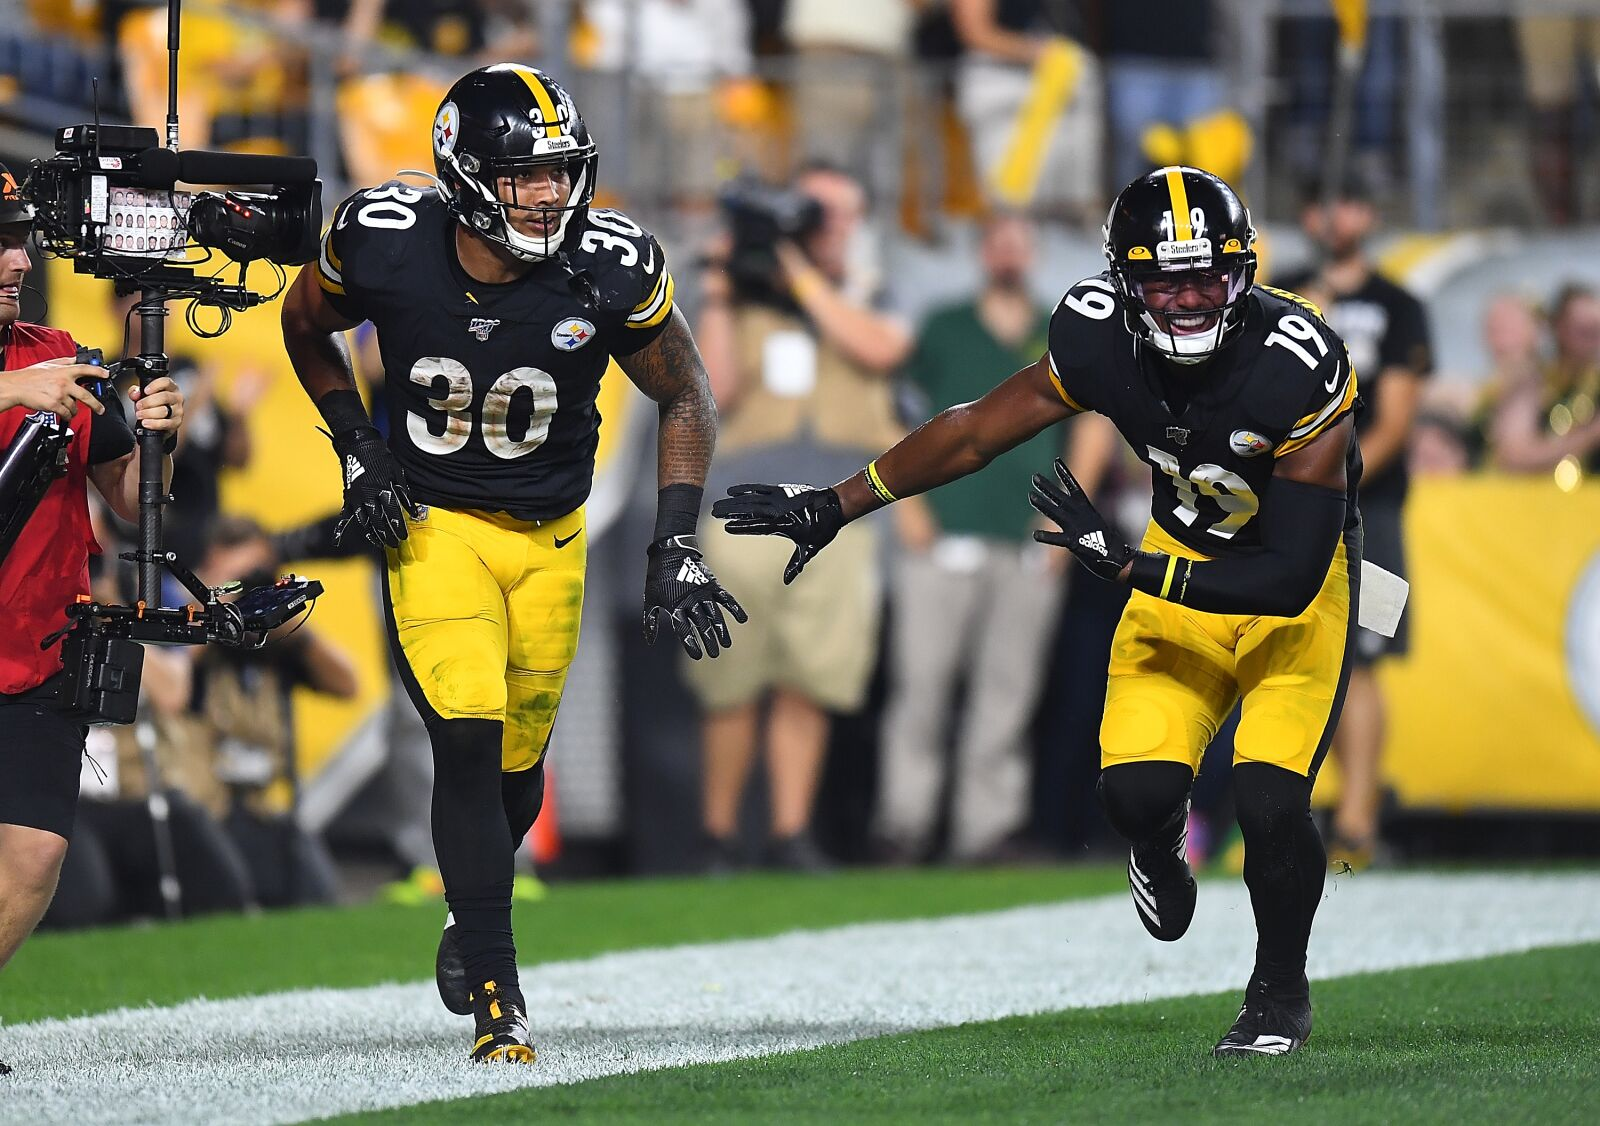 Is it fair to call Steelers JuJu Smith-Schuster and James Conner 'failures'